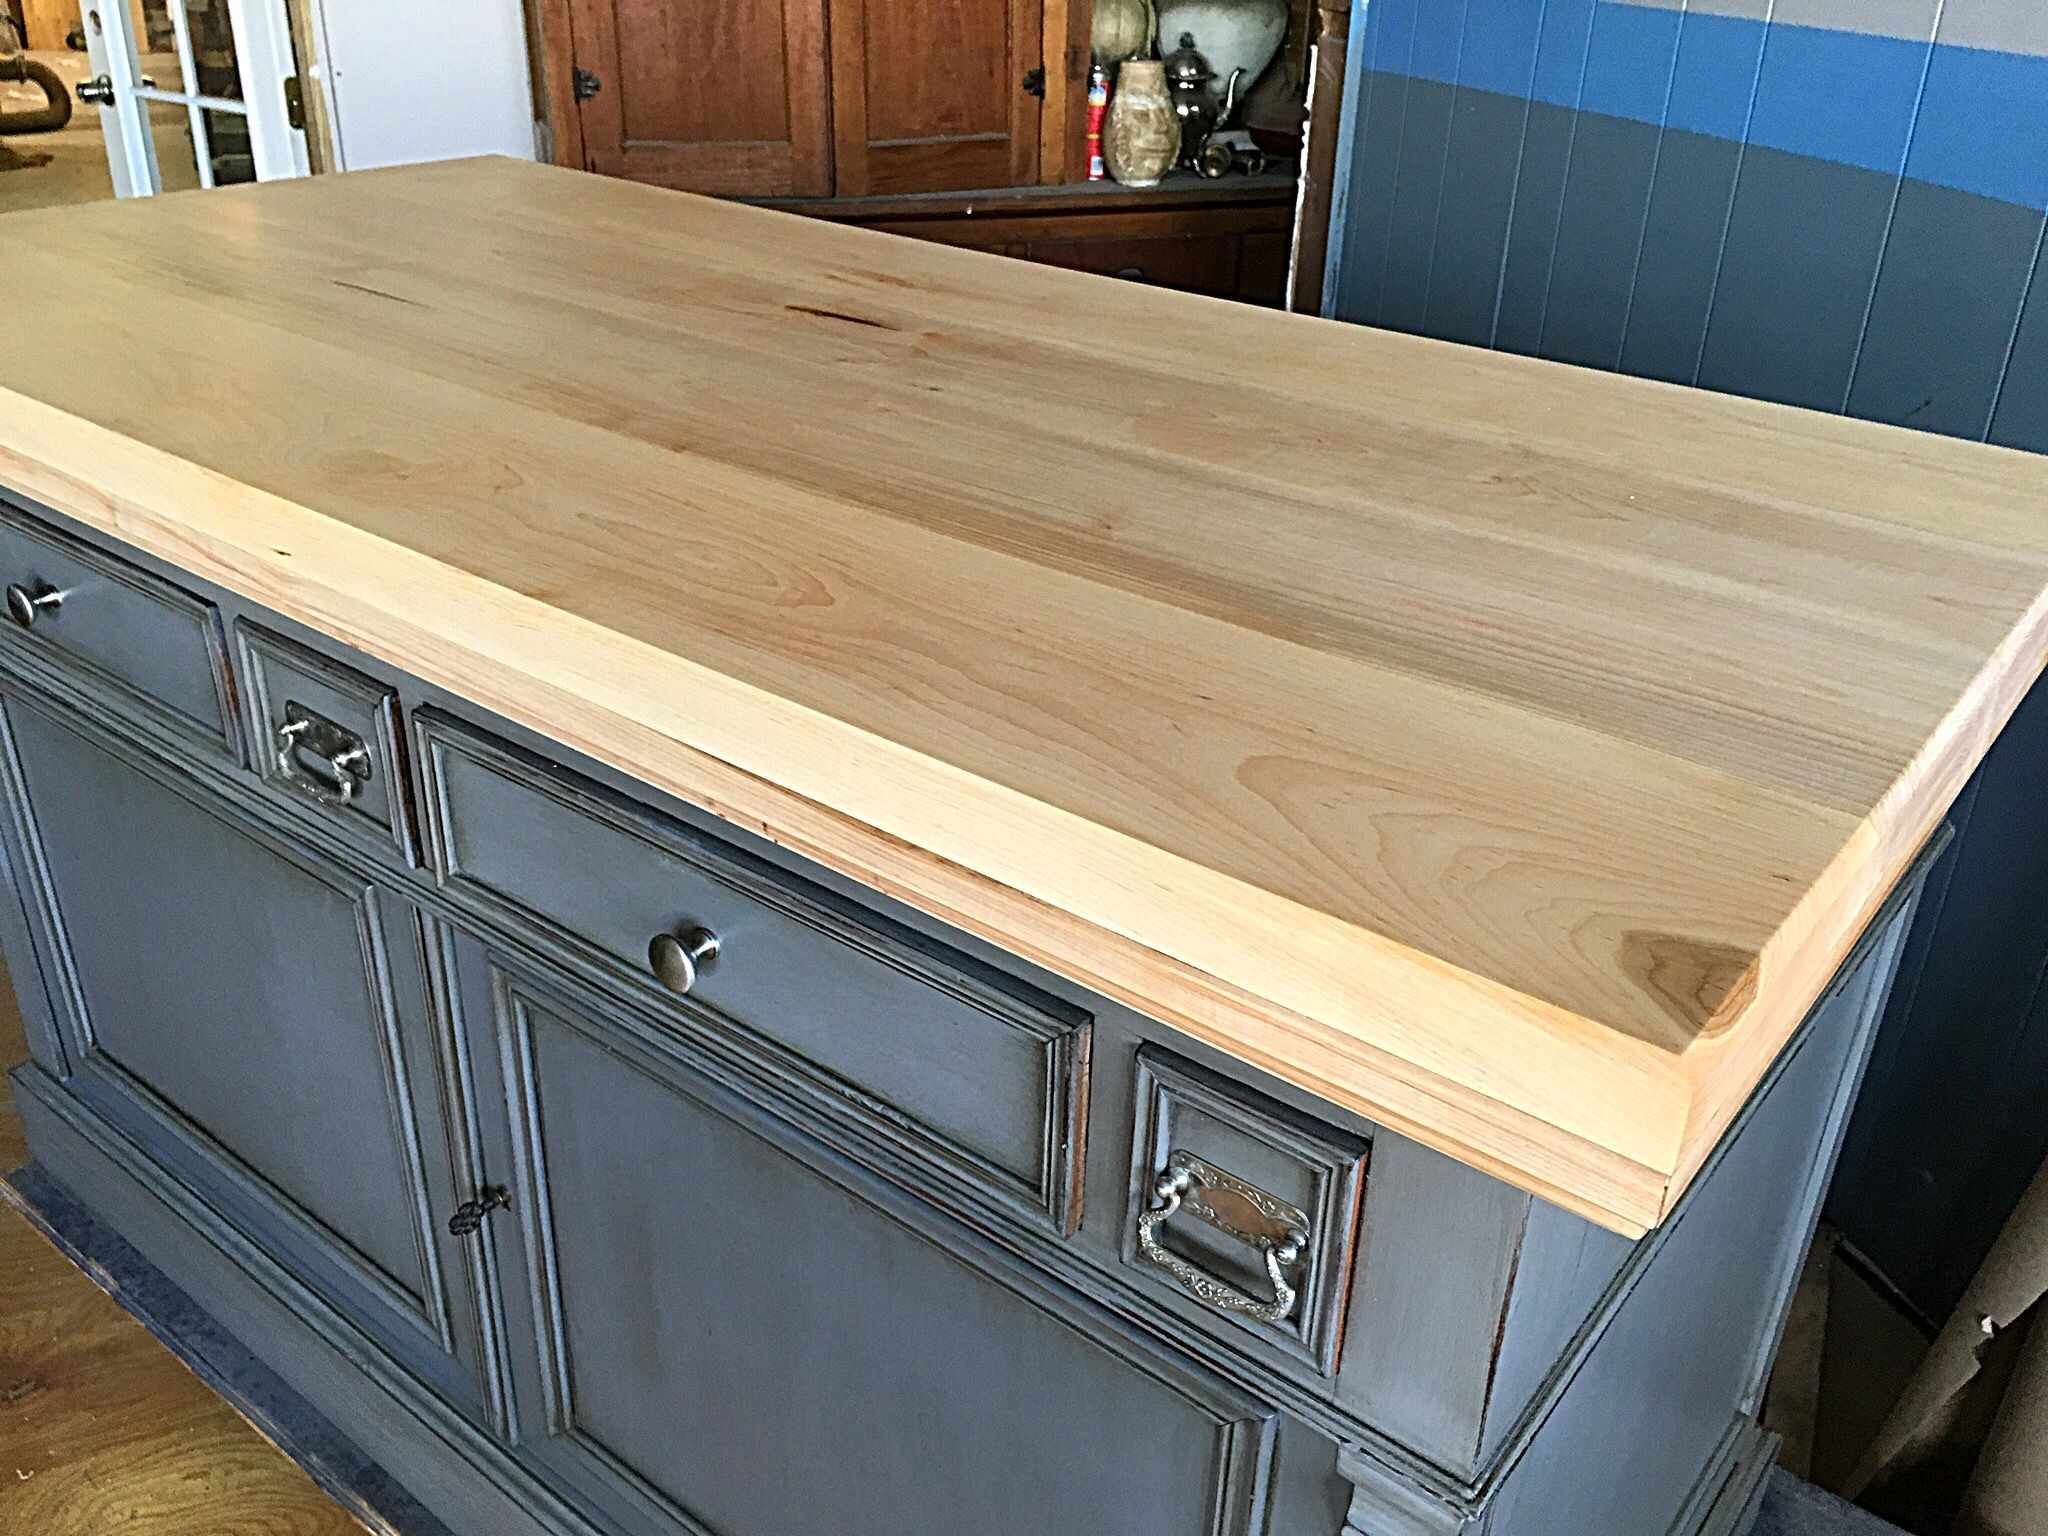 New Maple Top Built For Vintage Kitchen Island By Refined David In Orlando Fl